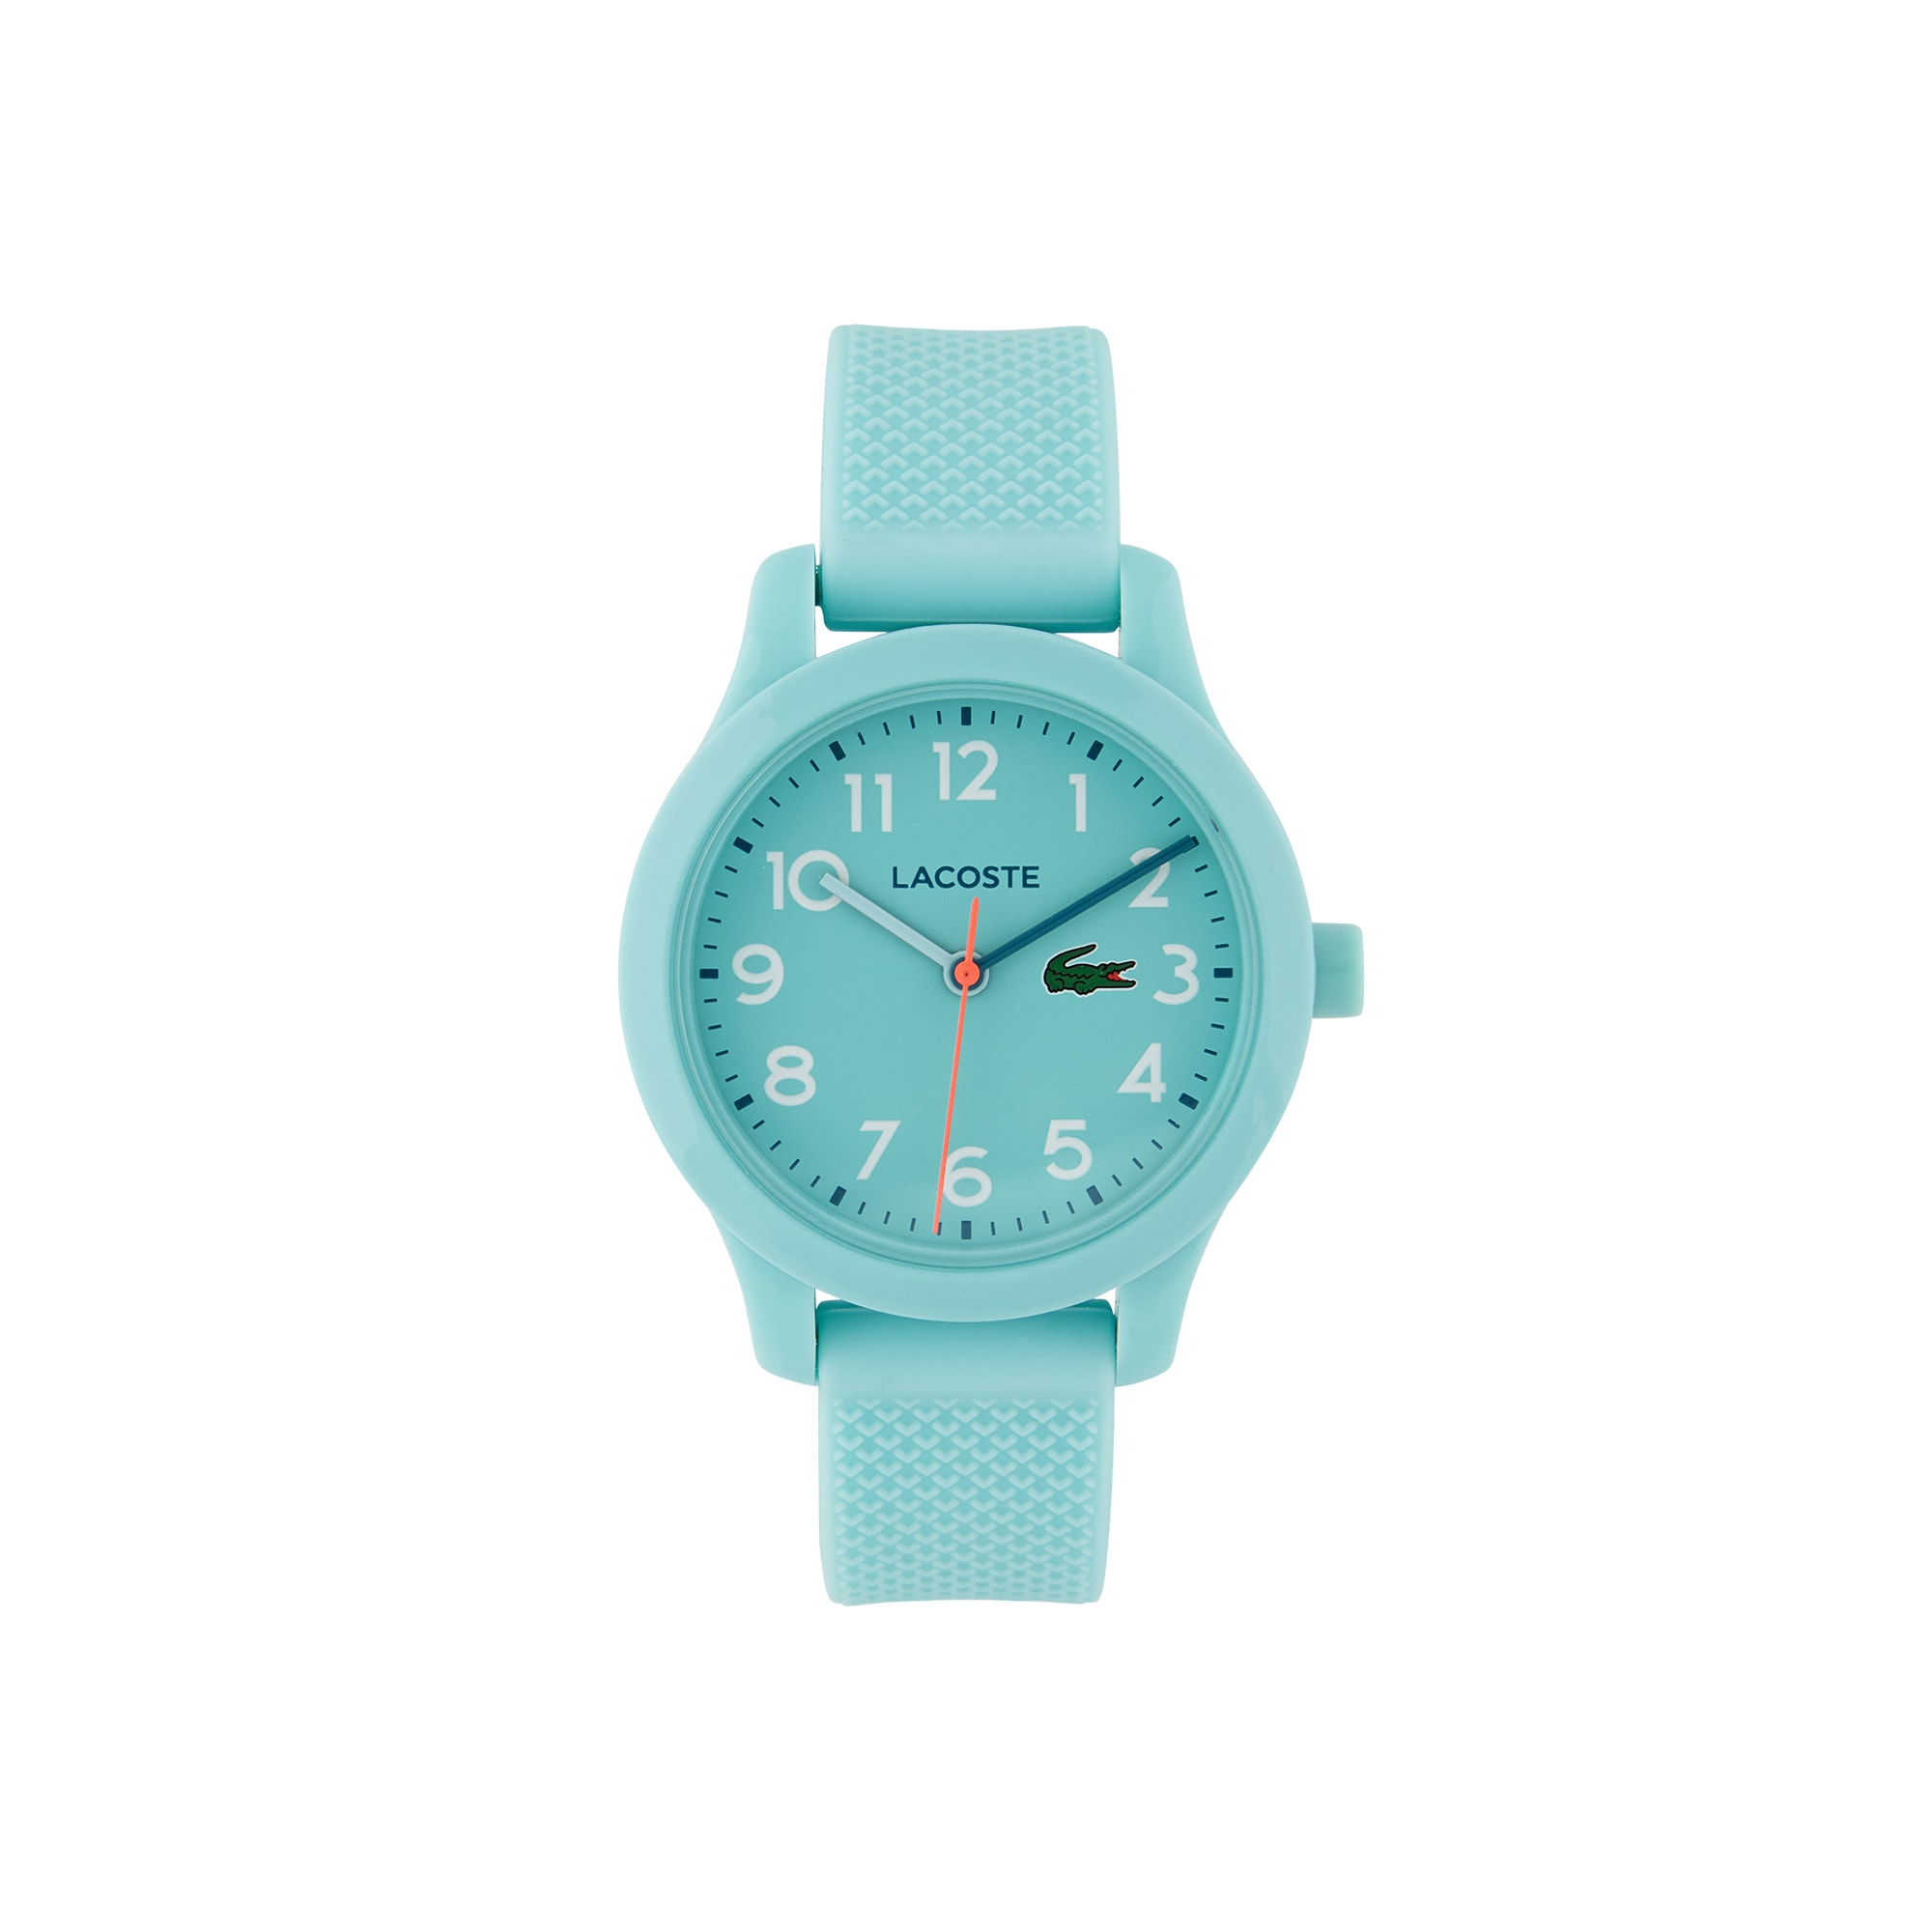 Child's Lacoste 12.12 Watch with Turquoise Silicone Strap